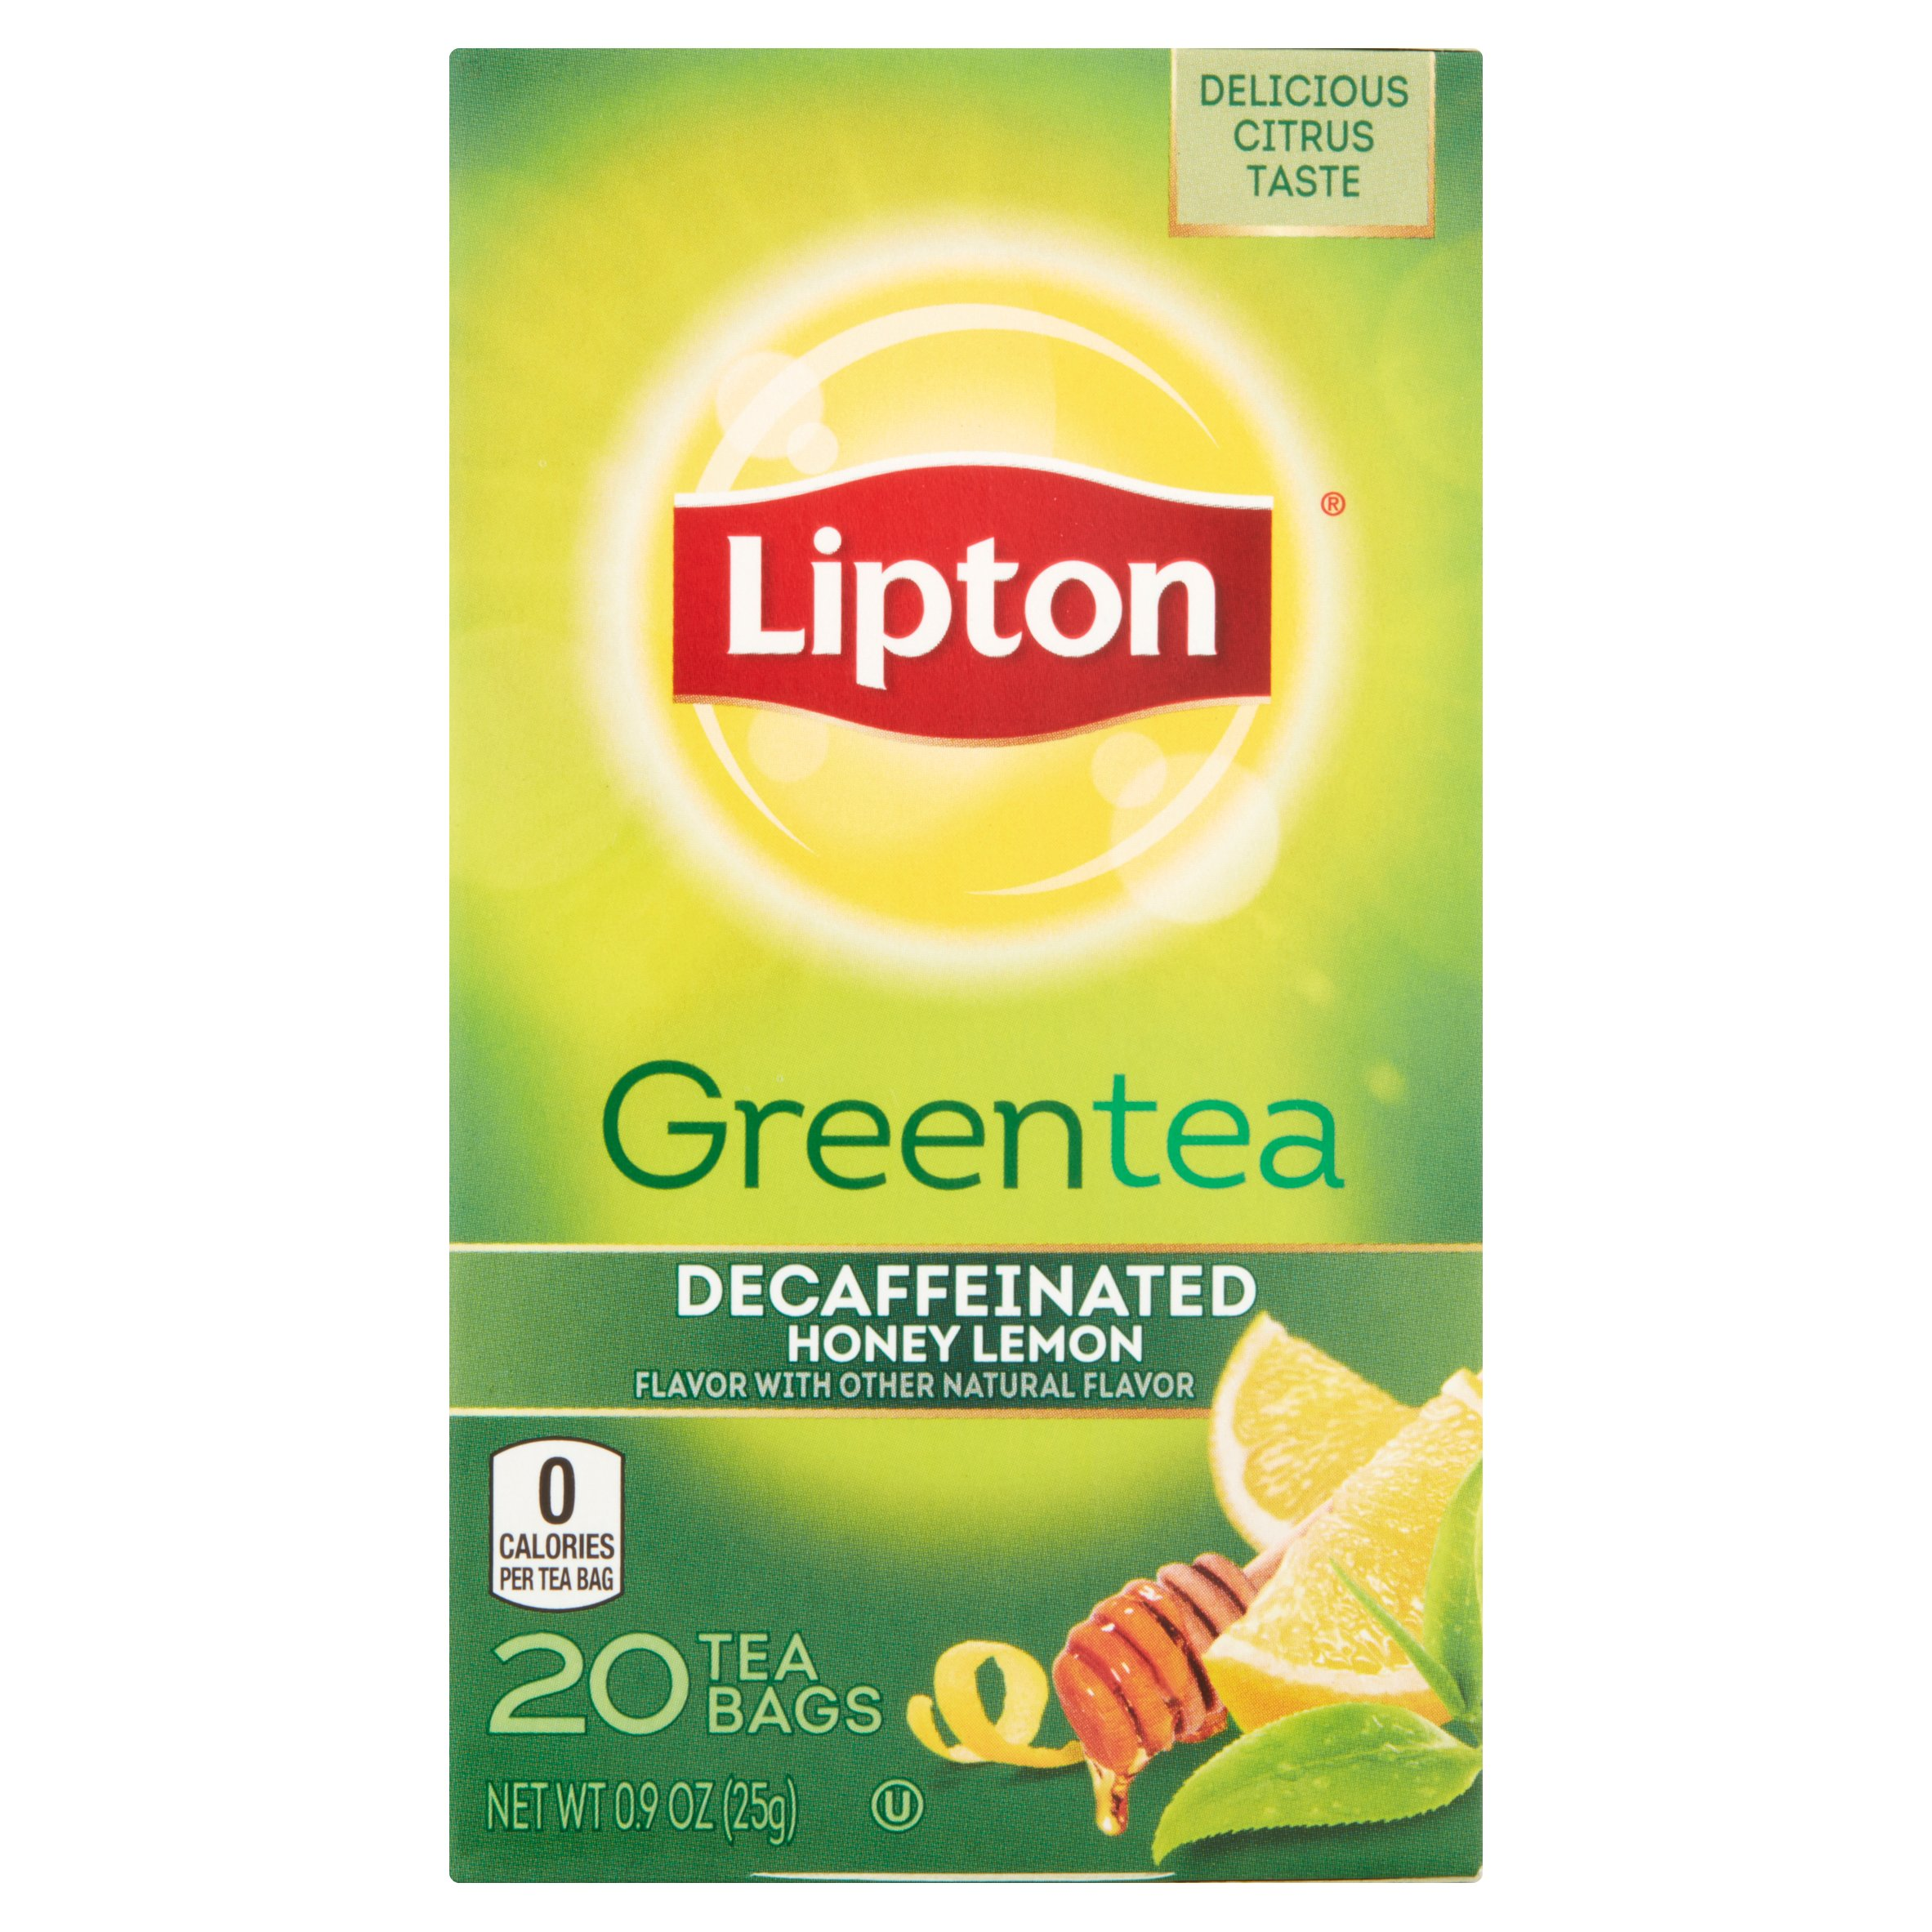 (4 Boxes) Lipton Green Tea Decaffeinated Honey Lemon 20 ct